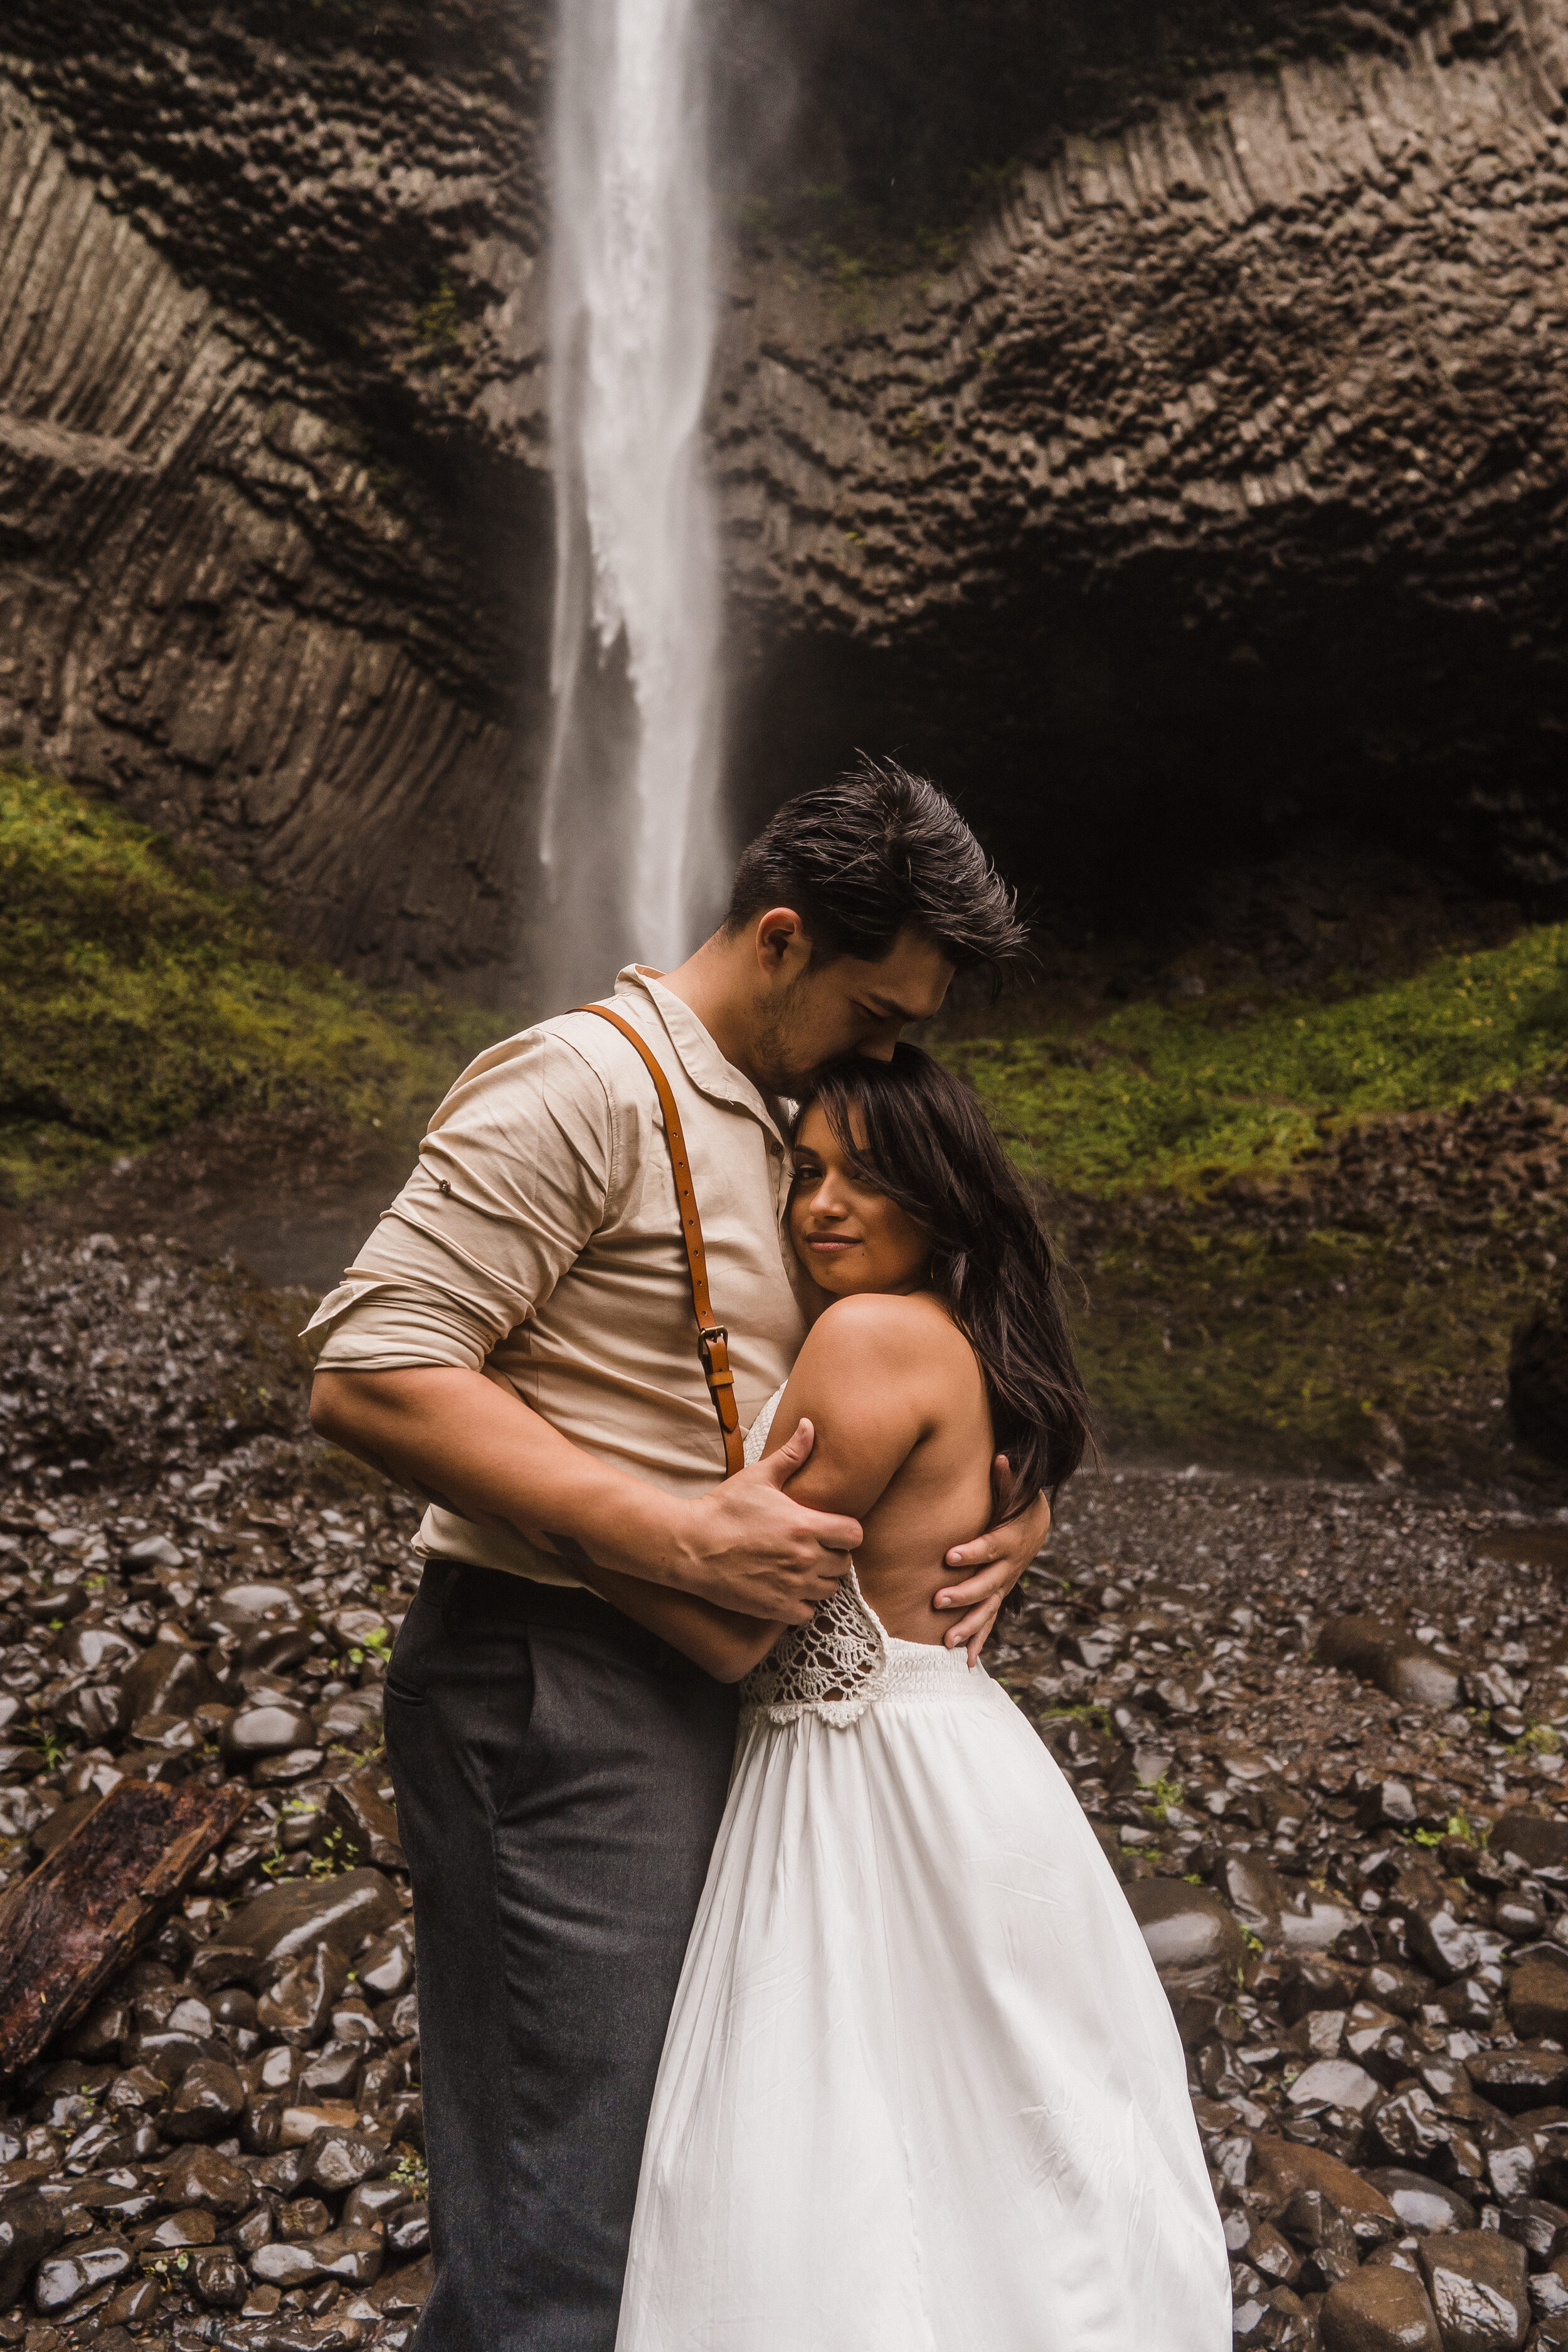 Columbia River Gorge: Elopement Style Vow Renewal | Between the Pine Adventure Elopement Photography